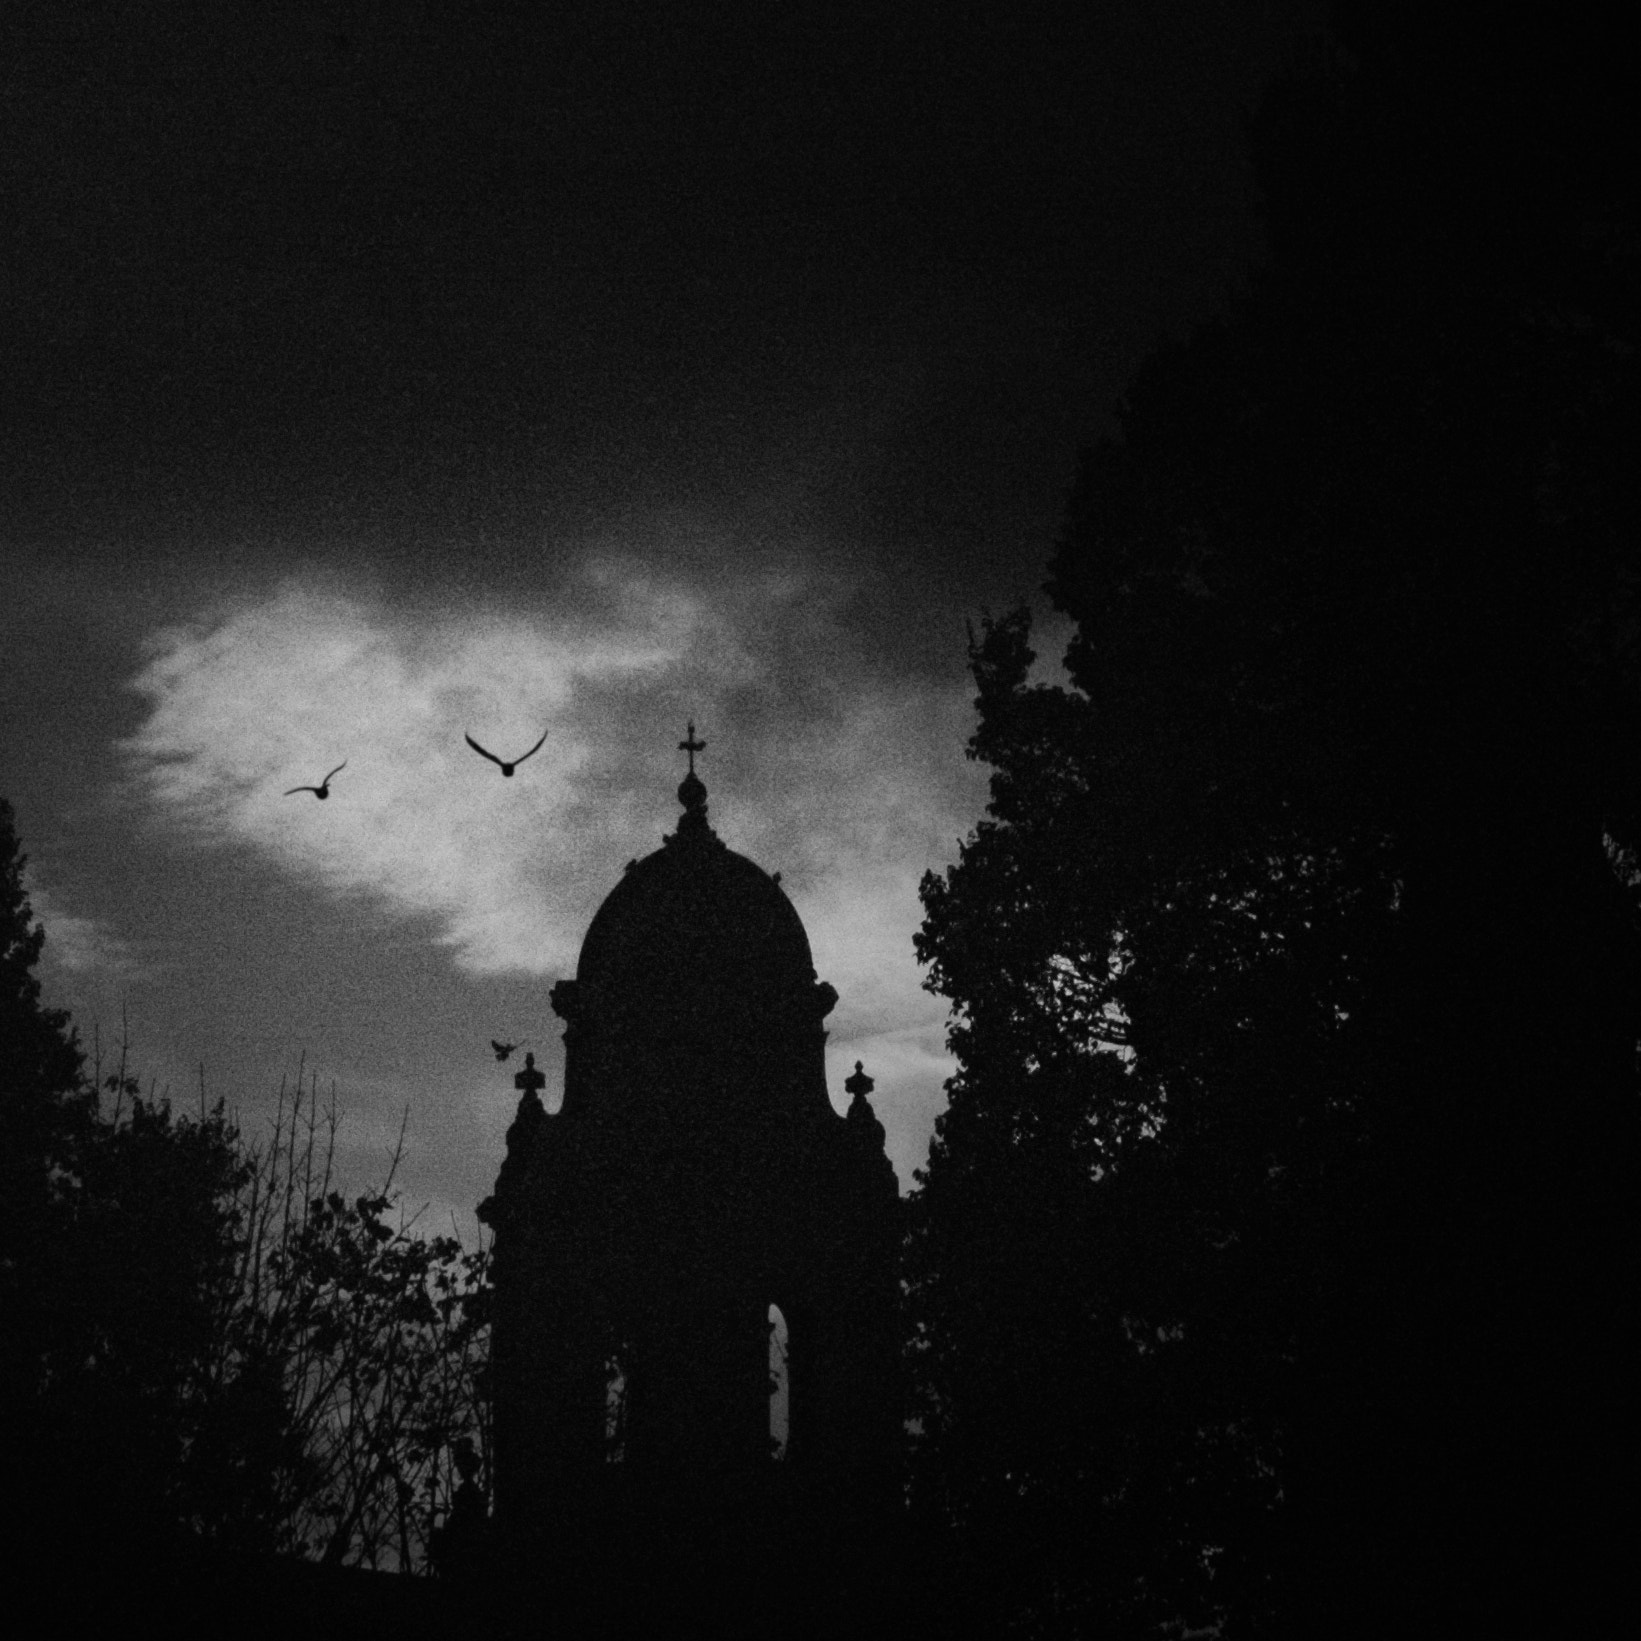 Photograph Spooks by Jim Downie on 500px